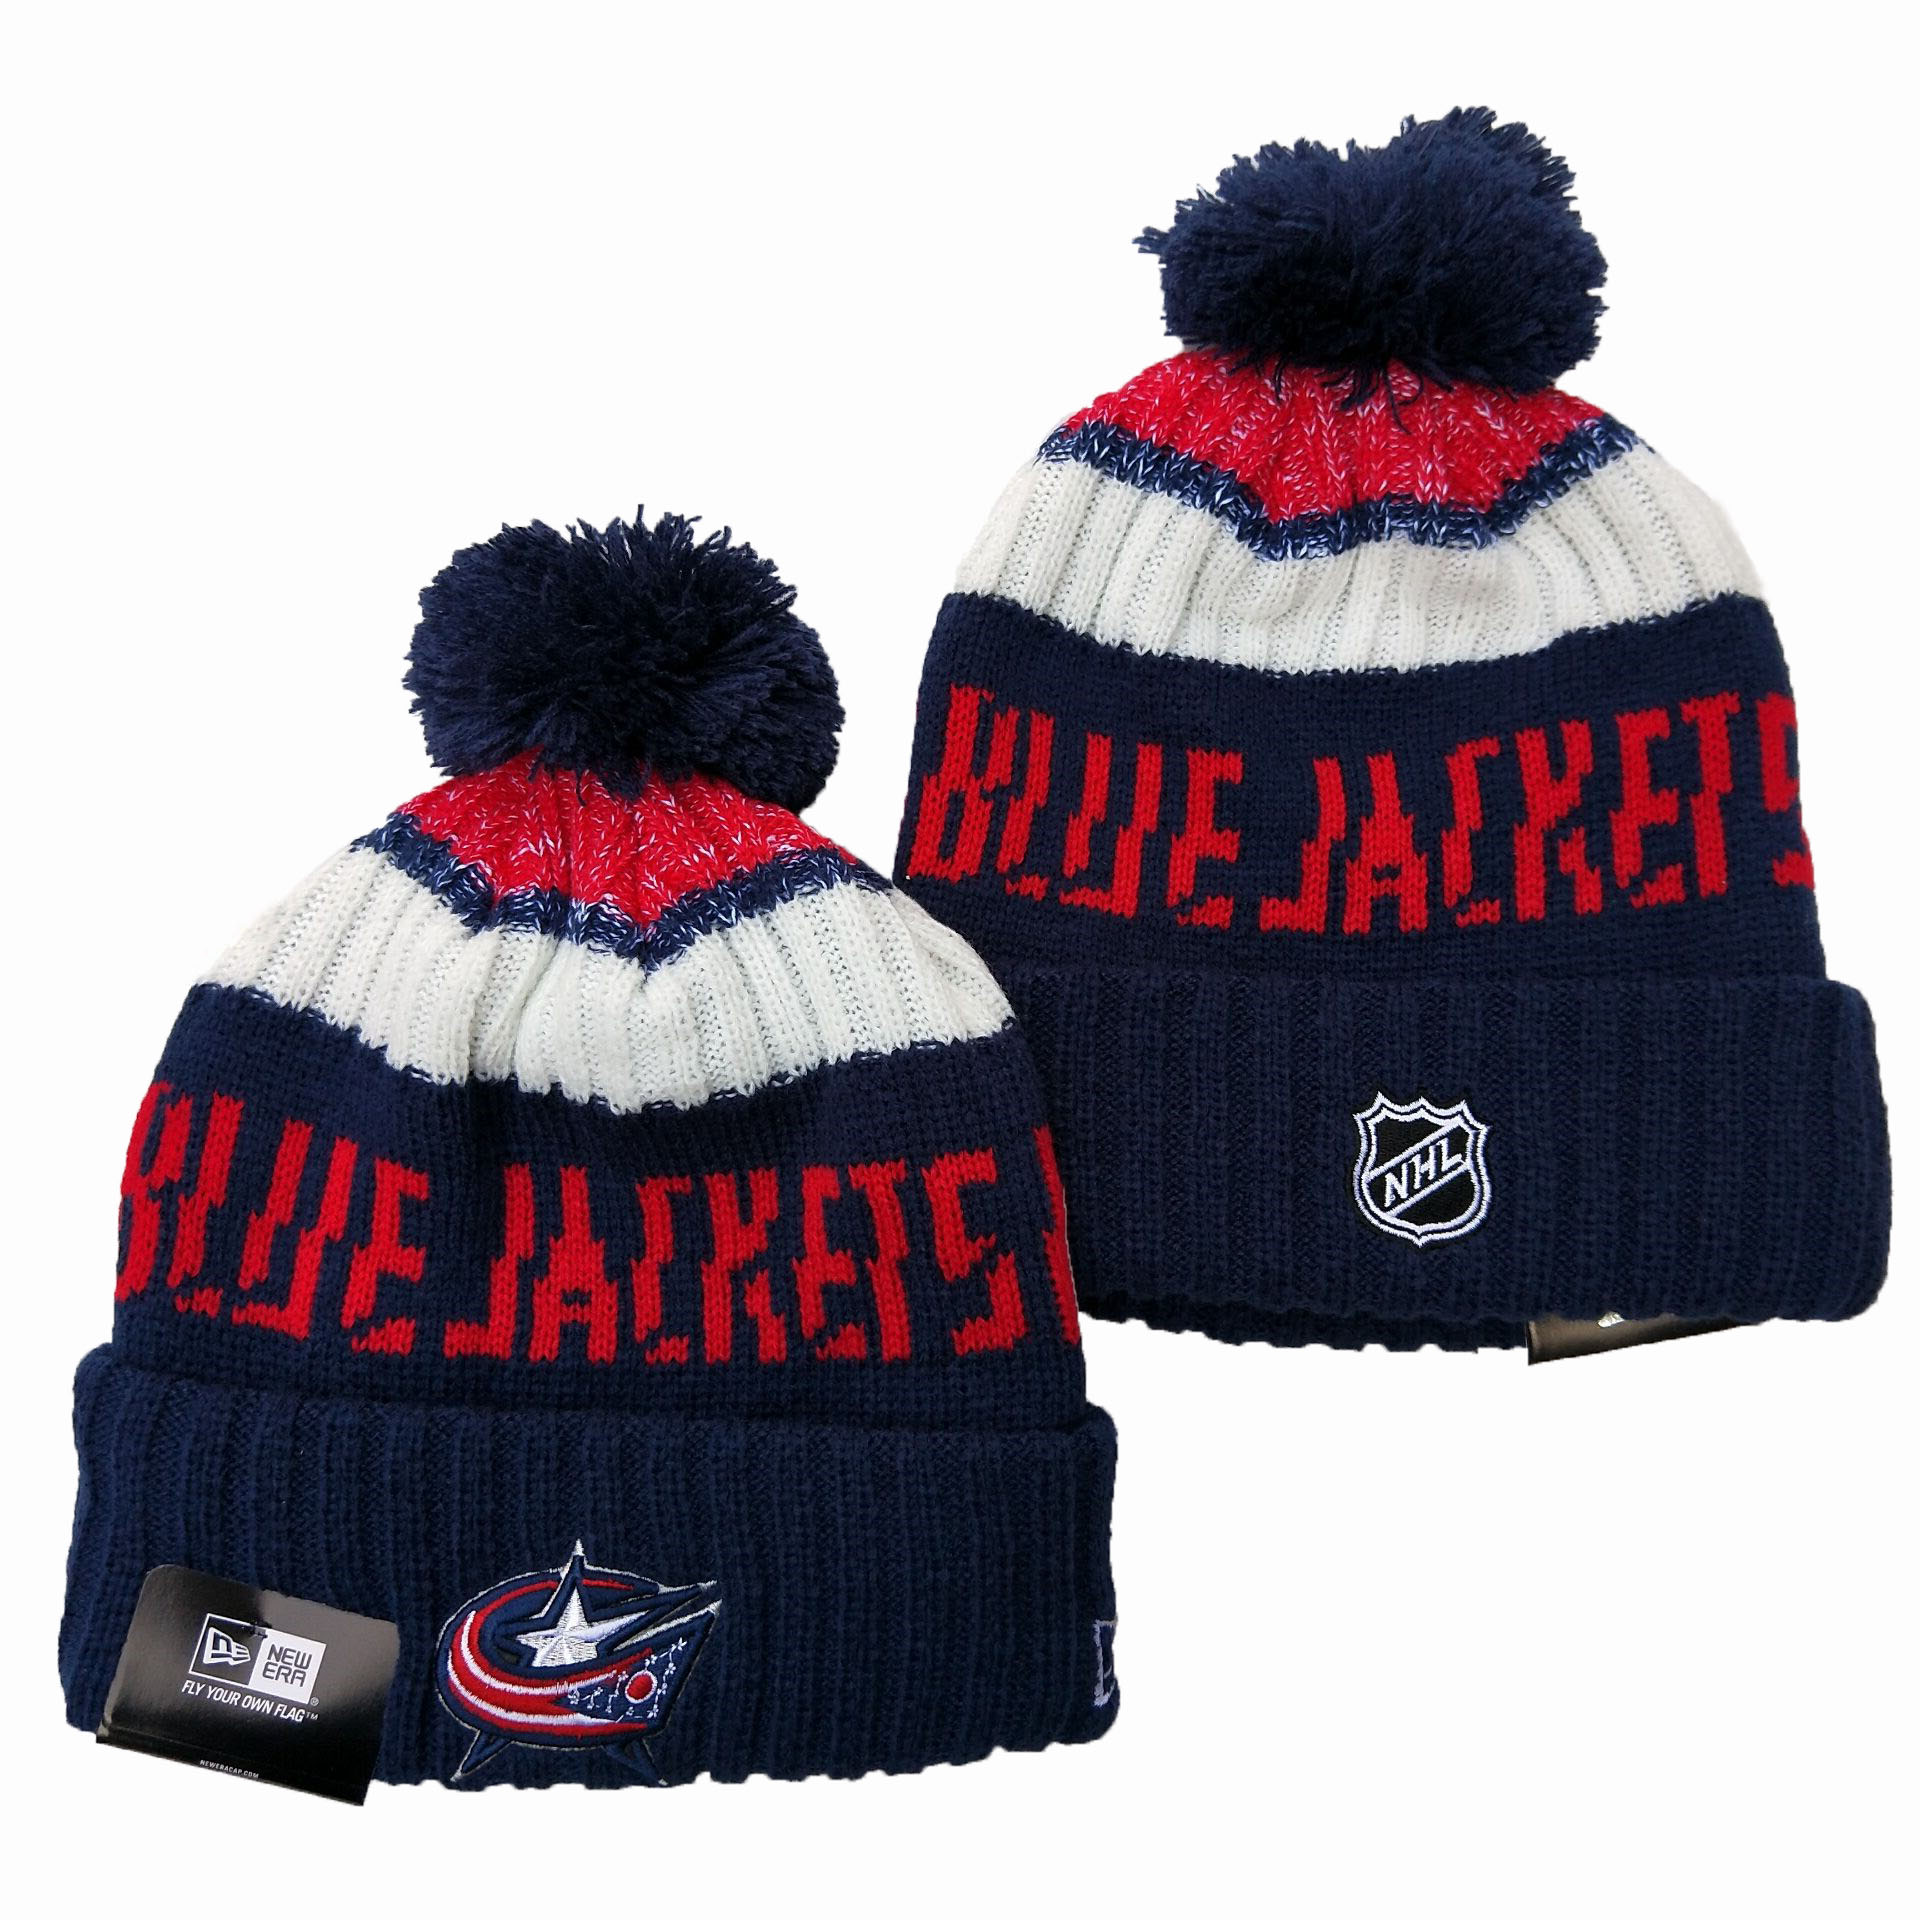 Columbus Blue Jackets Team Logo Black Pom Knit Hat YD